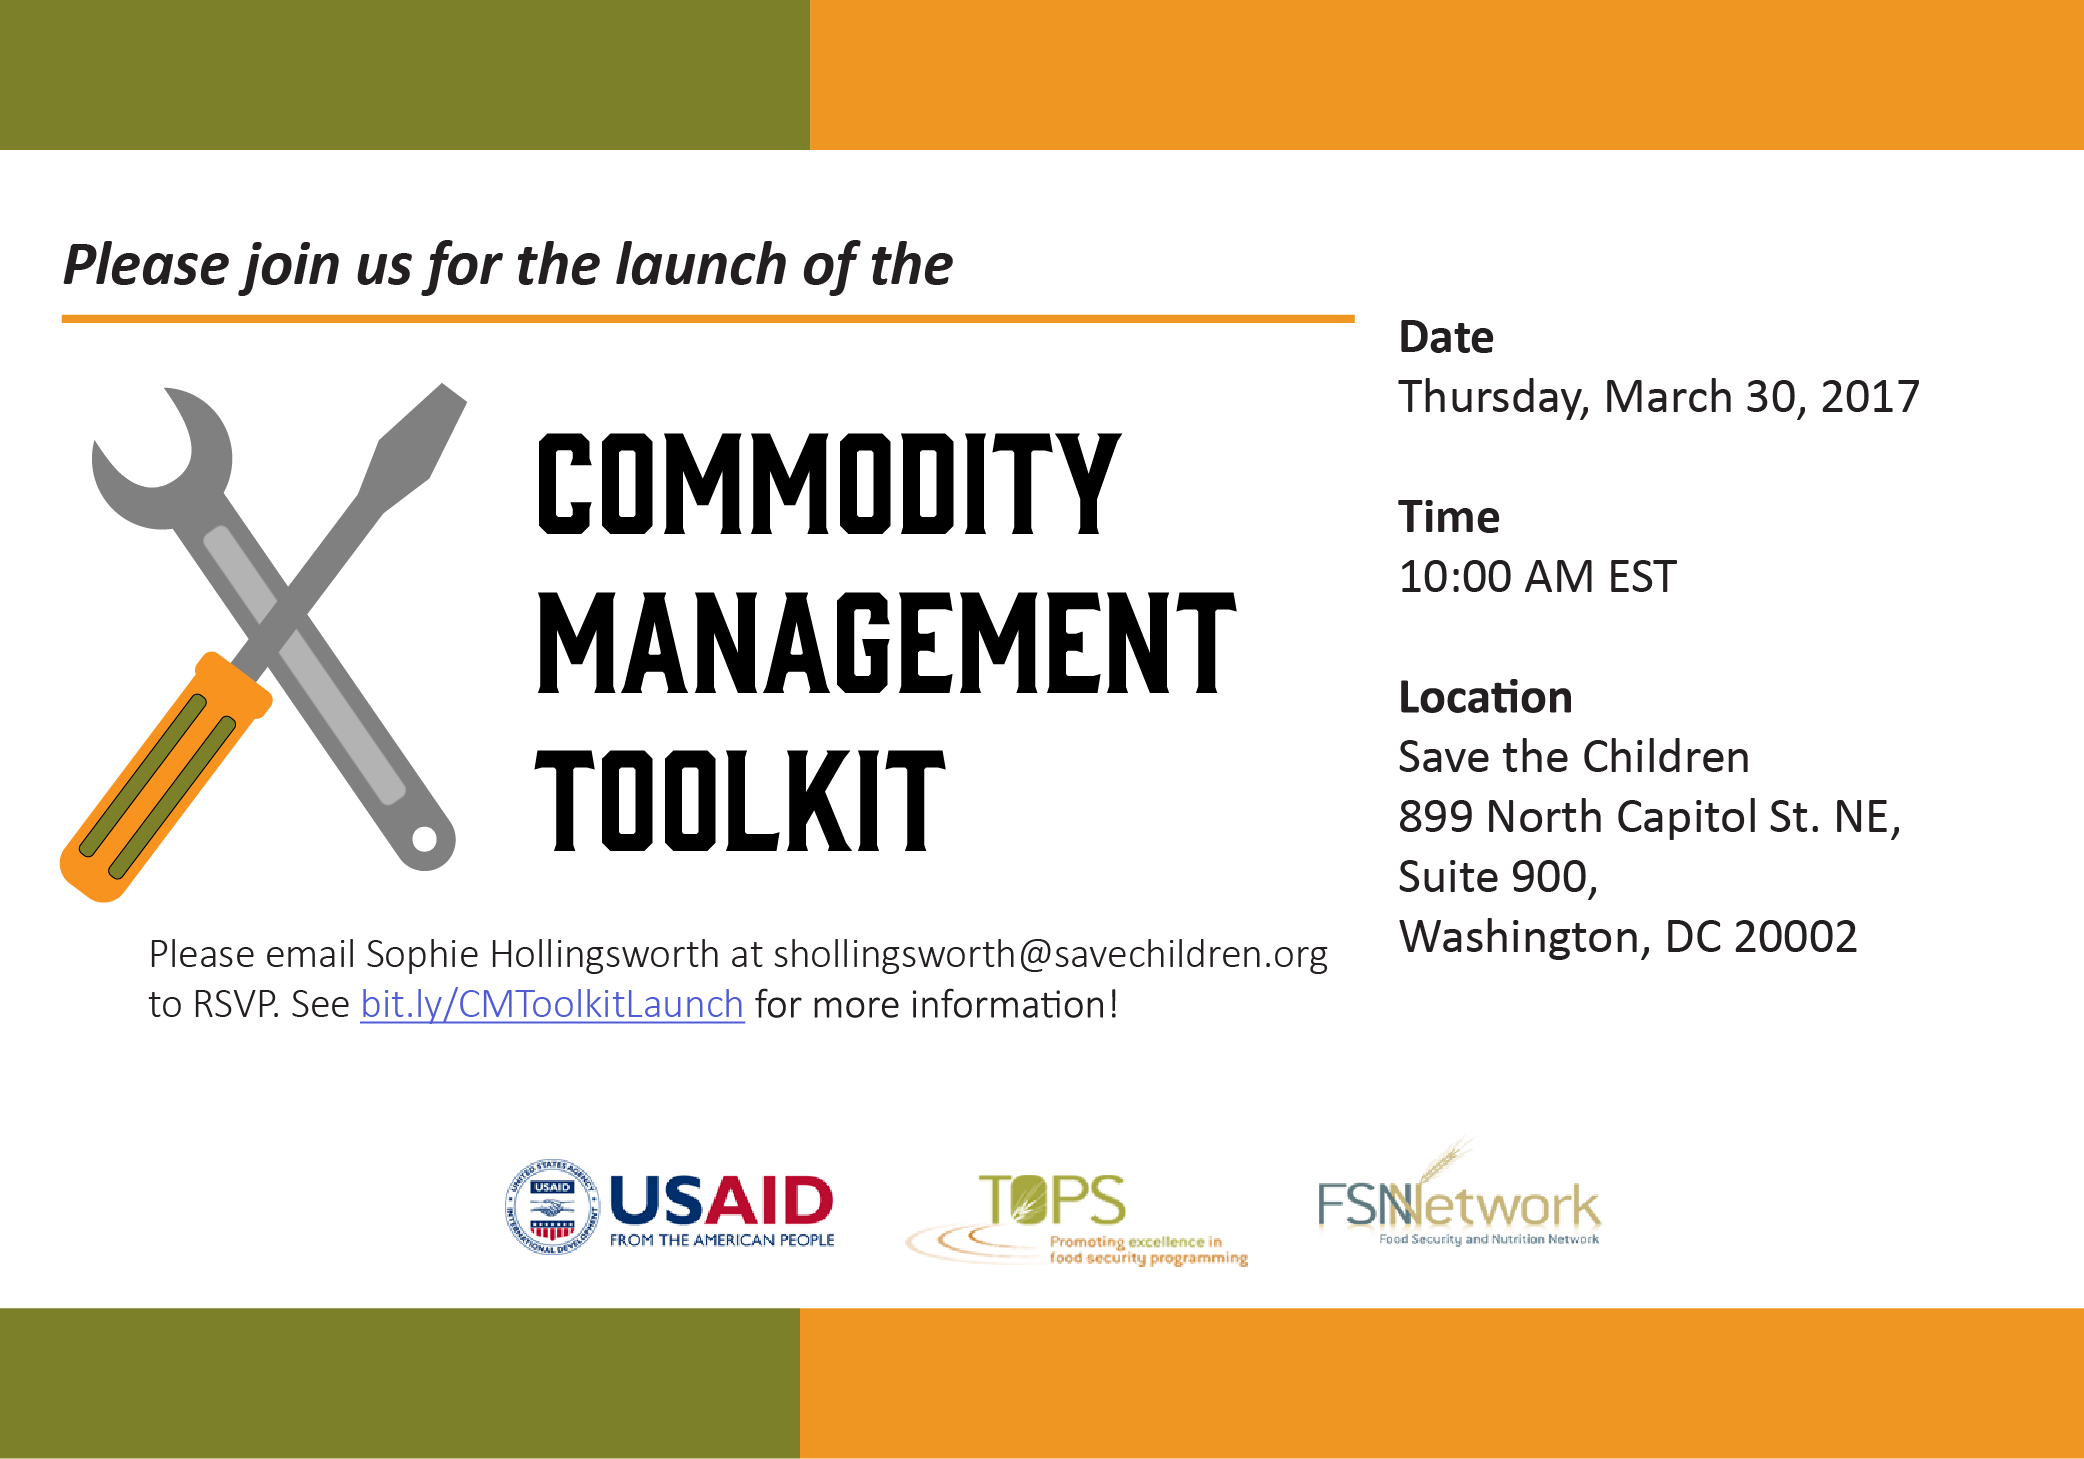 The Commodity Management Toolkit Launch Food Security